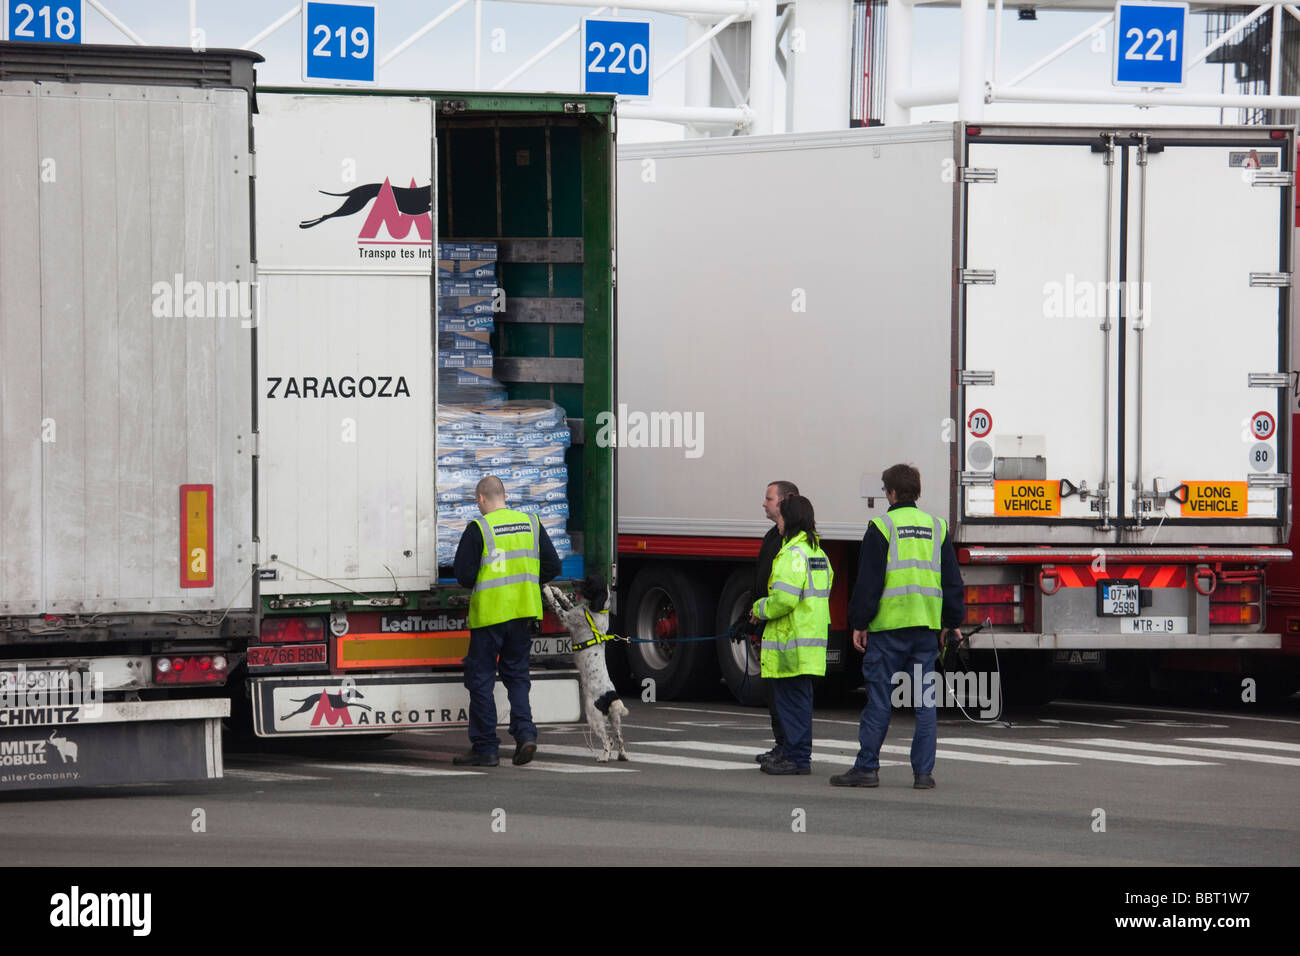 Calais Ferry Port France Europe UK Border Agency staff and sniffer dog checking a lorry - Stock Image